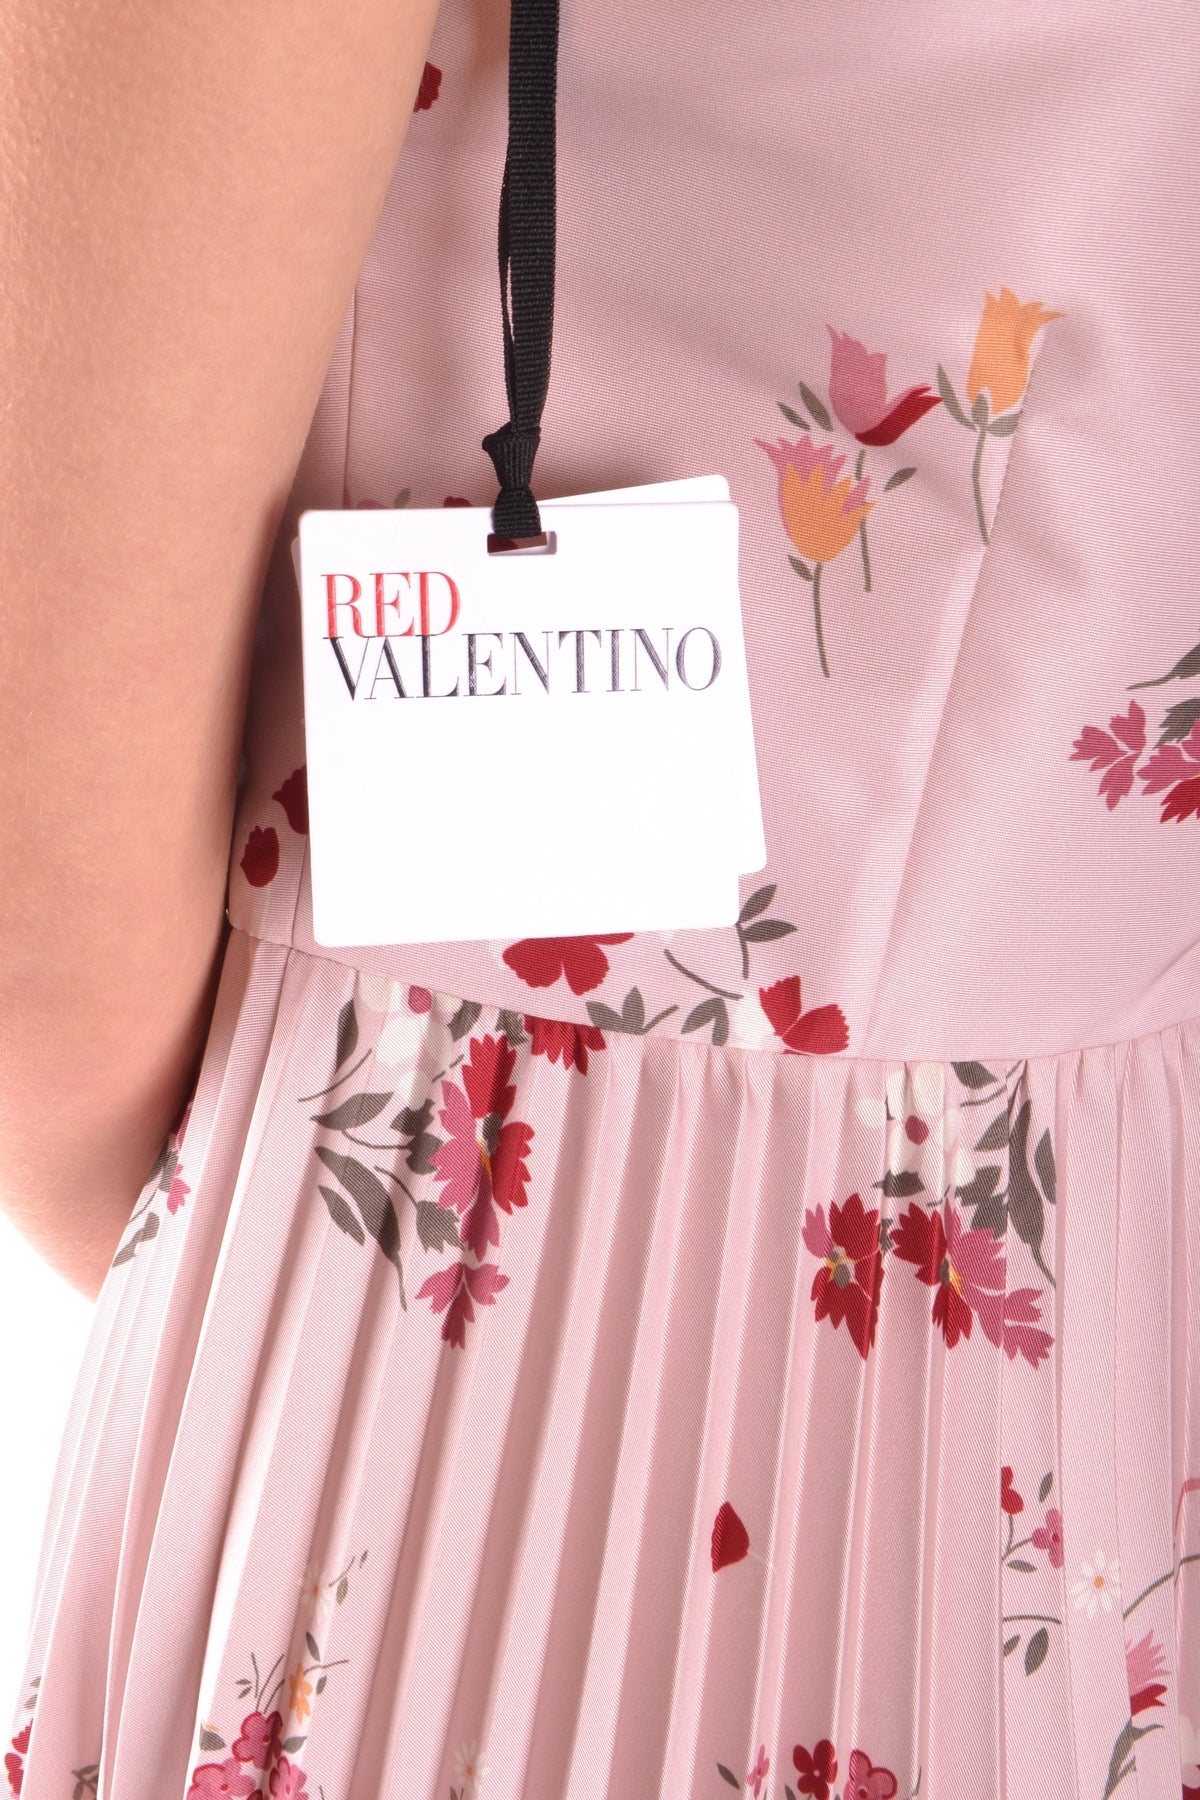 Dress R.E.D. Valentino-Dress - WOMAN-Keyomi-Sook